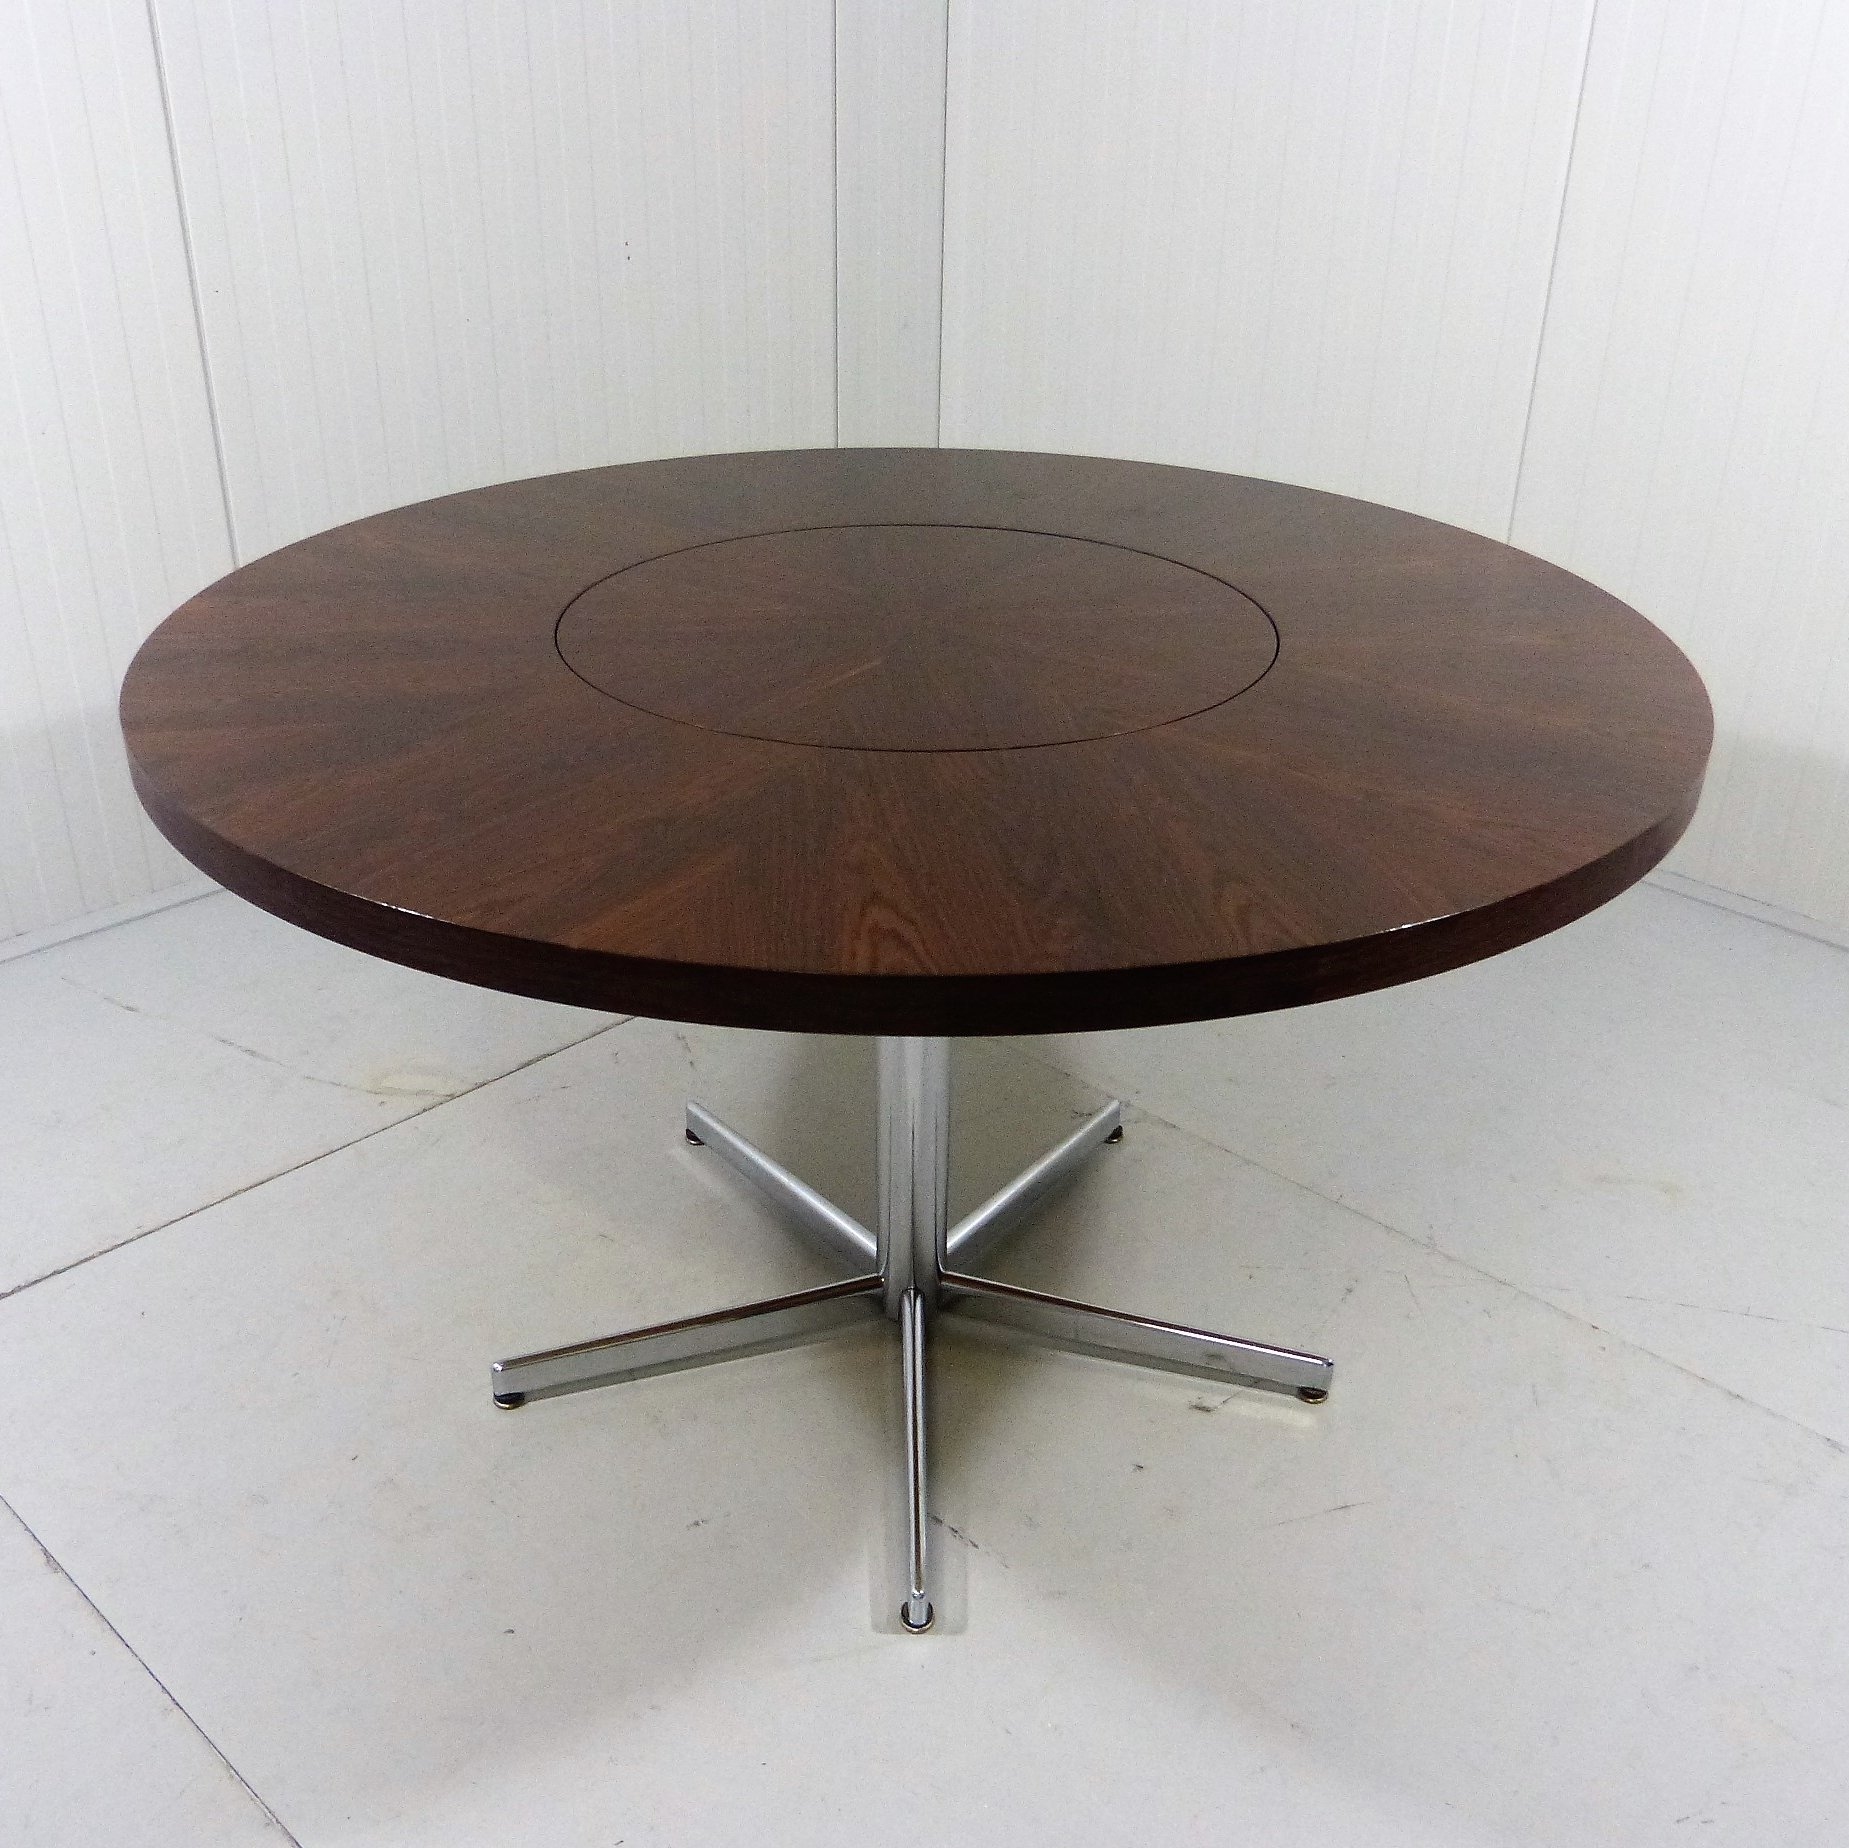 Round Rosewood Dining Table By Em Germany With Revolving Center,